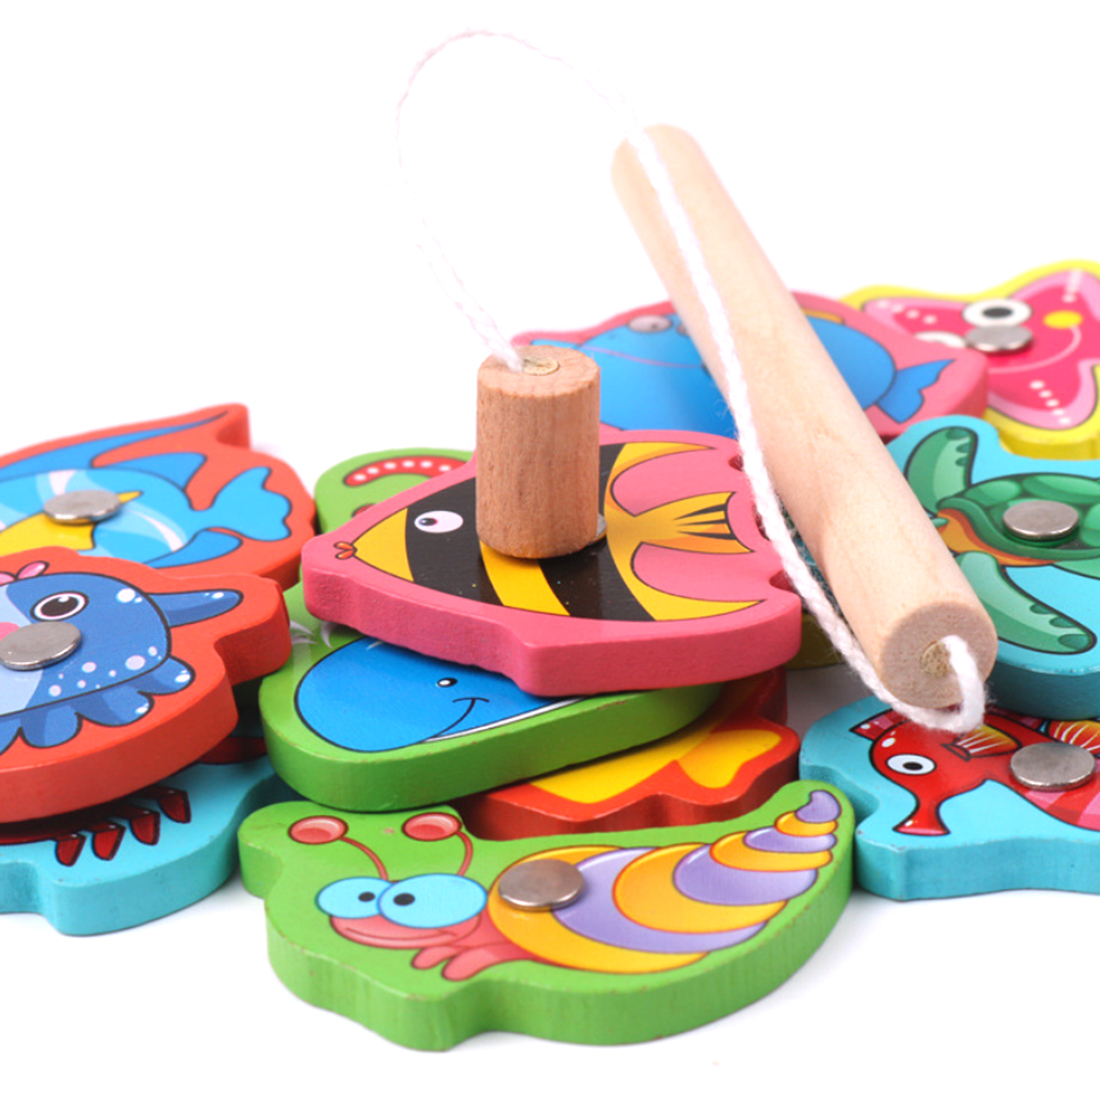 Rowsfire 1 Set Children Pretend Play Wooden Magnetic Fishing Game Early Educational Toys For Children Games Pink in Fishing Toys from Toys Hobbies